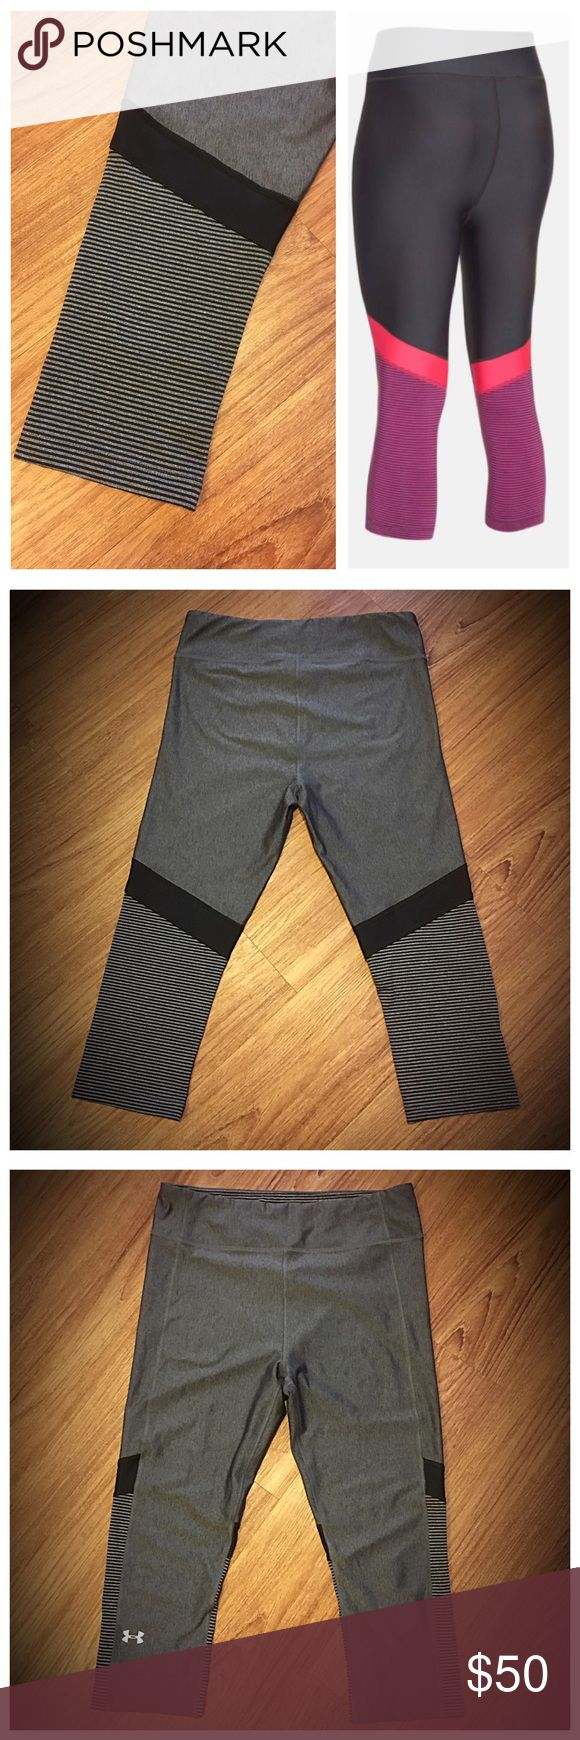 """Under Armour gray/Black stripe Compression Capri 📦Same day shipping (as long as P.O. is open for business). ❤ Measurements are approximate. Descriptions are accurate to the best of my knowledge.  Ultra tight second skin compression fit. Gray with black stripped back panel on legs. Light weight with signature moisture wicking 4-way stretch fabric. Anti-microbial technology to keep you fresh.  Flat measurements: 13.75"""" across waist, 18.5"""" inseam, 10"""" rise from top of crotch seam. Smoke/pet…"""